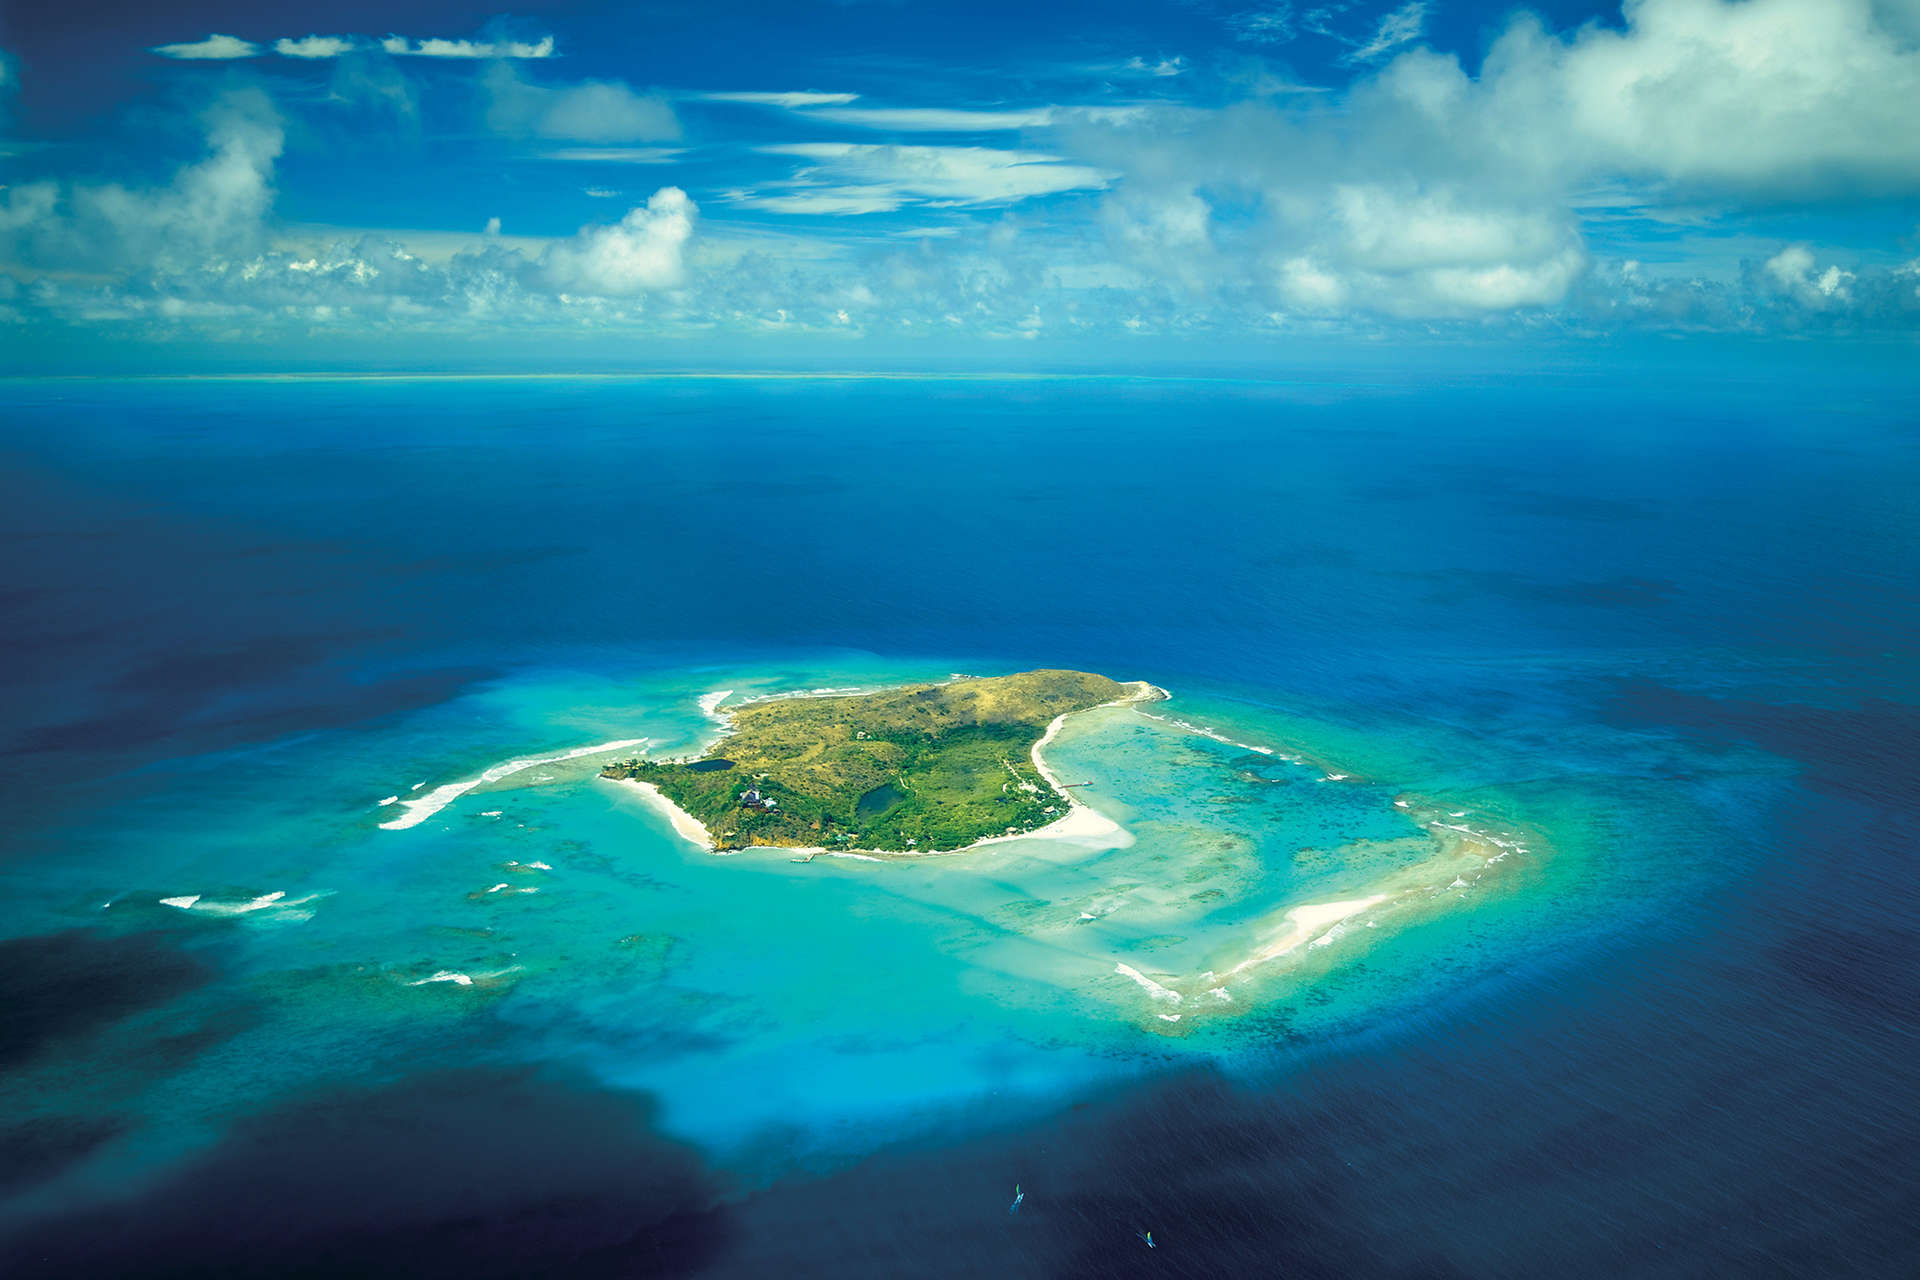 Luxury villa rentals caribbean - British virgin islands - Necker island - Necker Island - Image 1/43